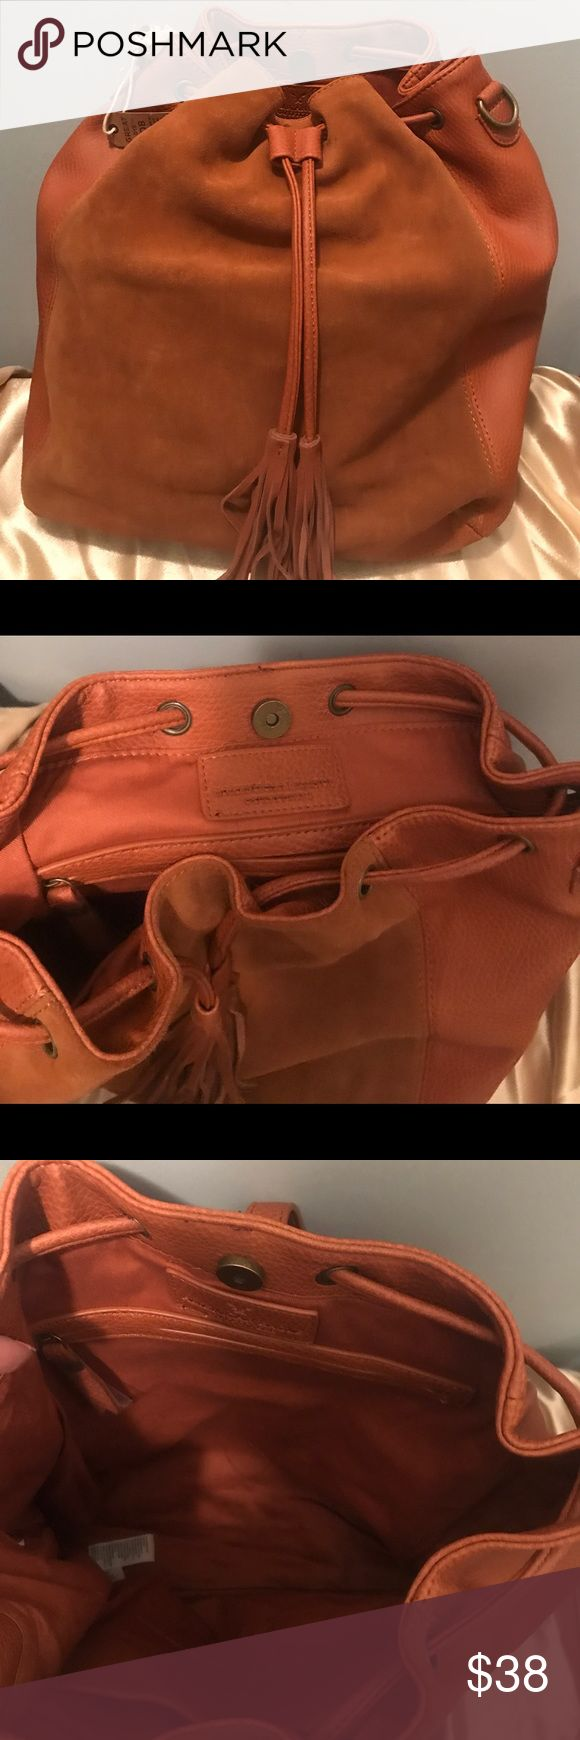 American Eagle Outfitters Brand New Purse American Eagle Outfitters Brand New Purse Leather  Back sack Purse American Eagle Outfitters Bags Backpacks